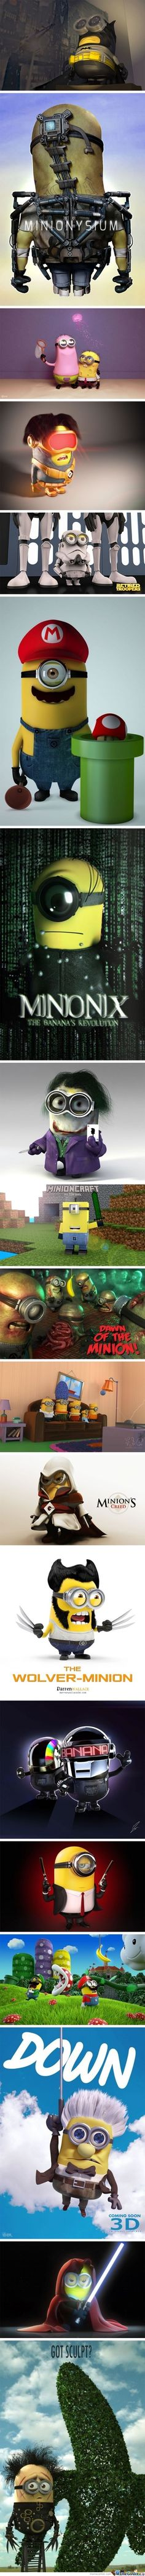 My favs r the minecraft one, the down one, and the Edward scissorhands one : )